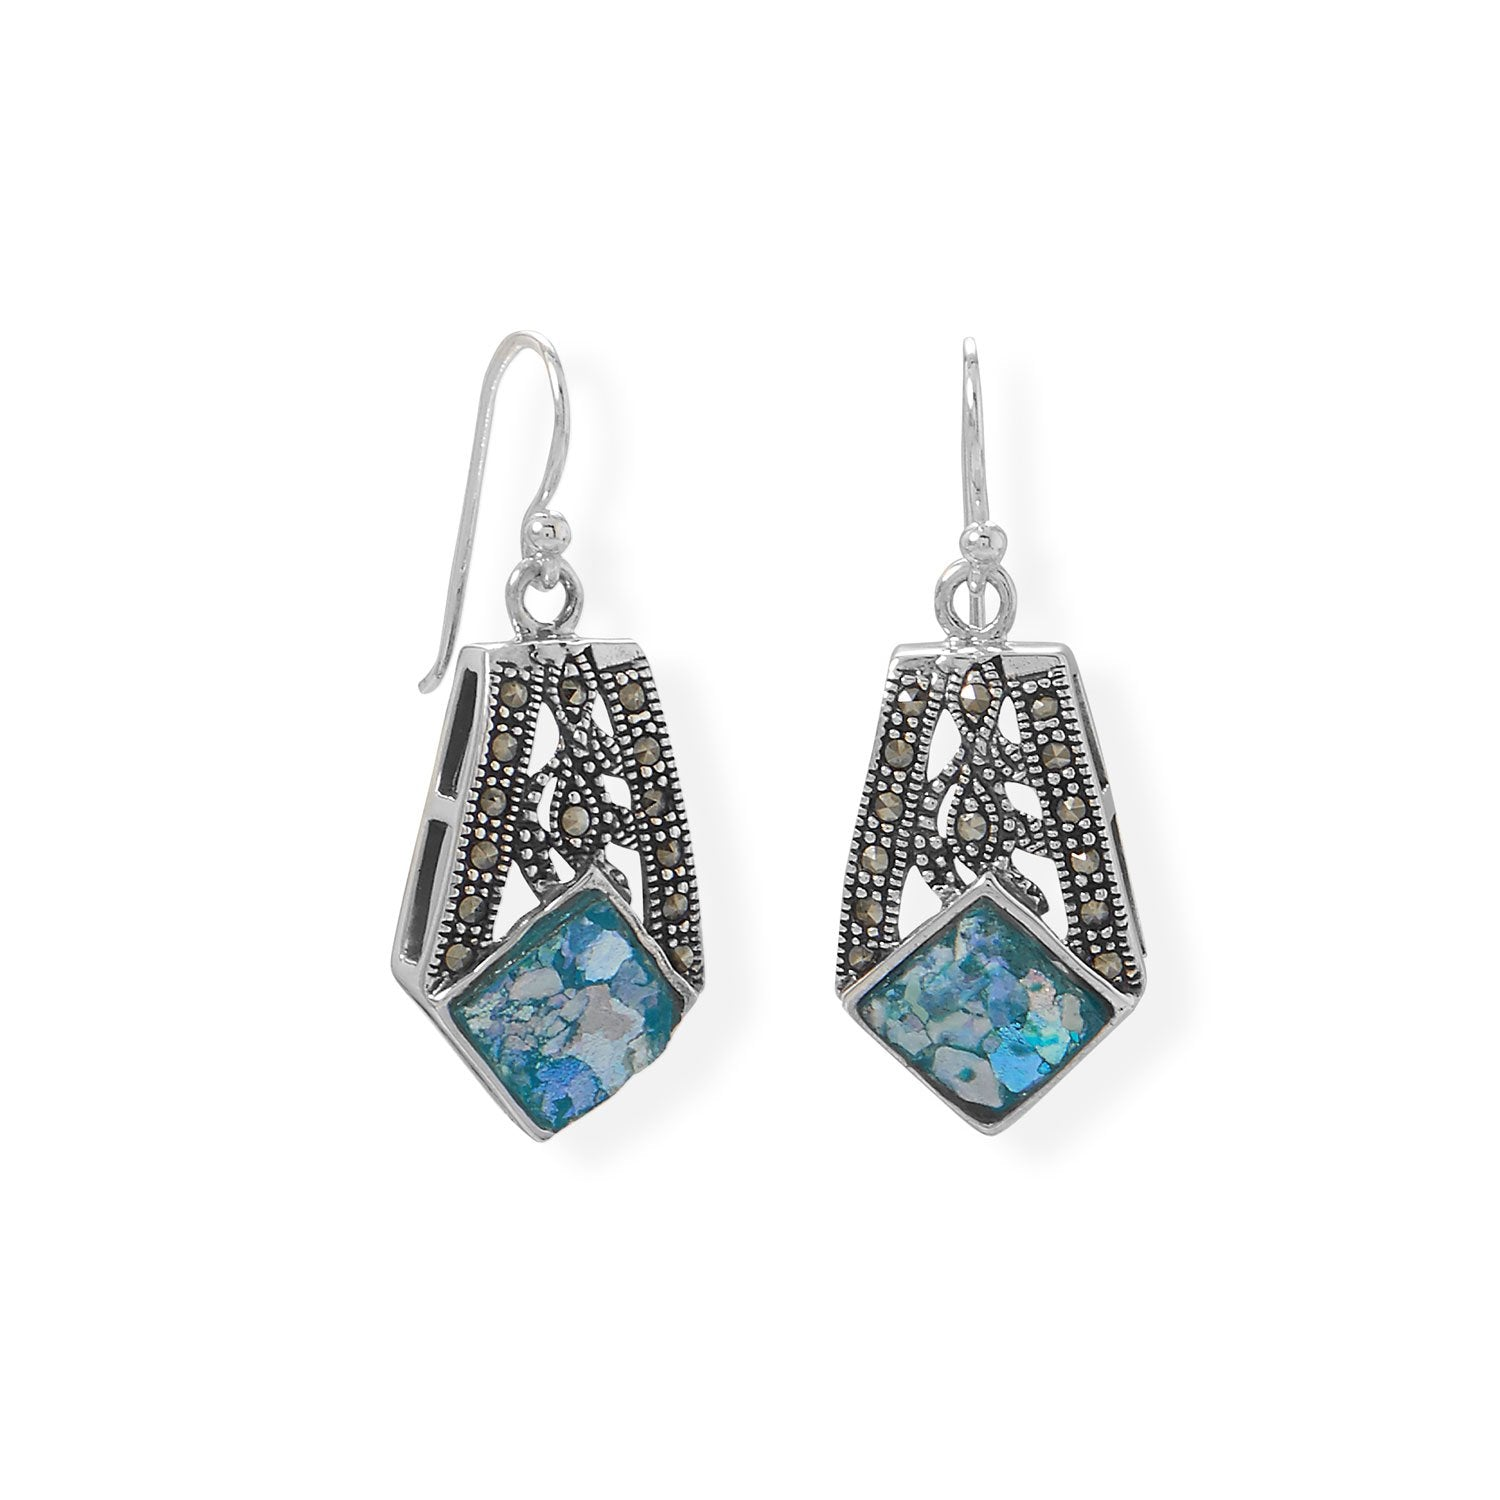 Oxidized Marcasite and Roman Glass Earrings